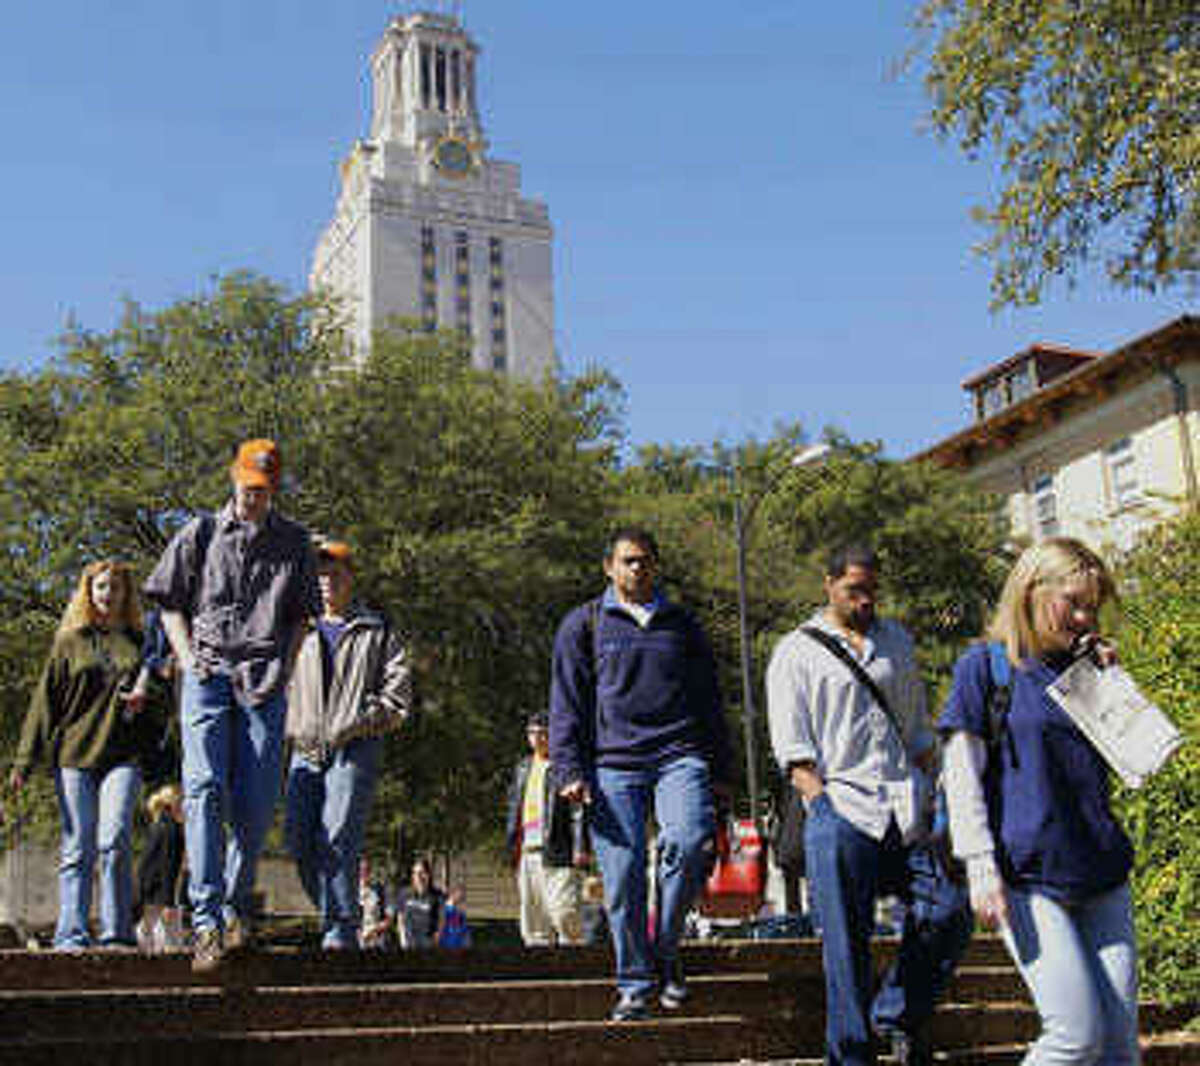 Students head to classes at UT-Austin.